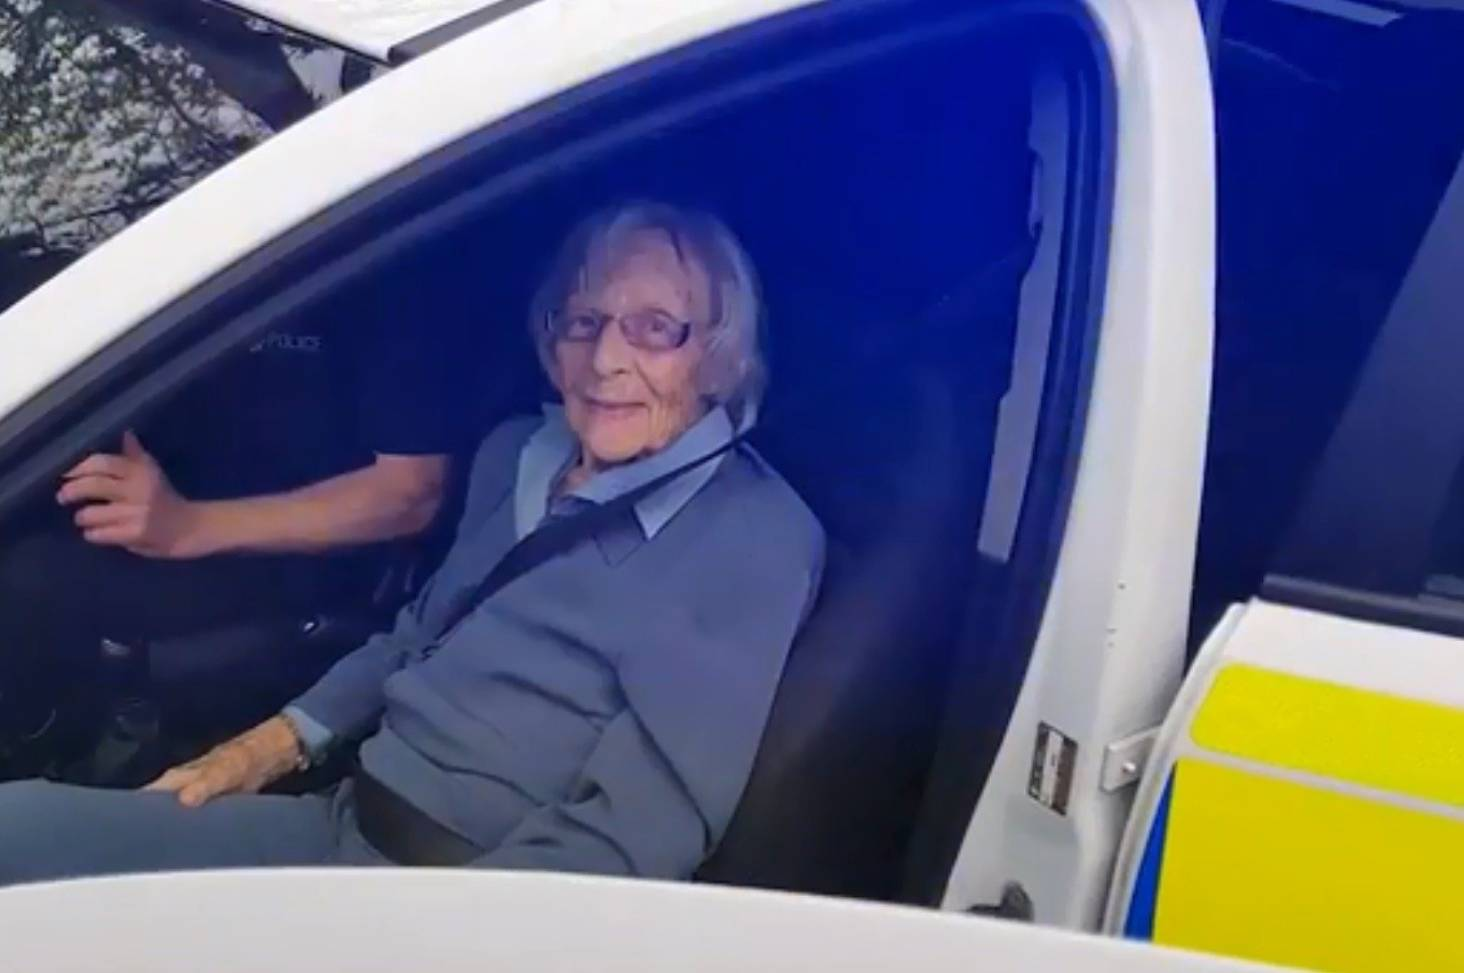 Police arrest 104-year-old woman to fulfil her greatest wish   Stuff